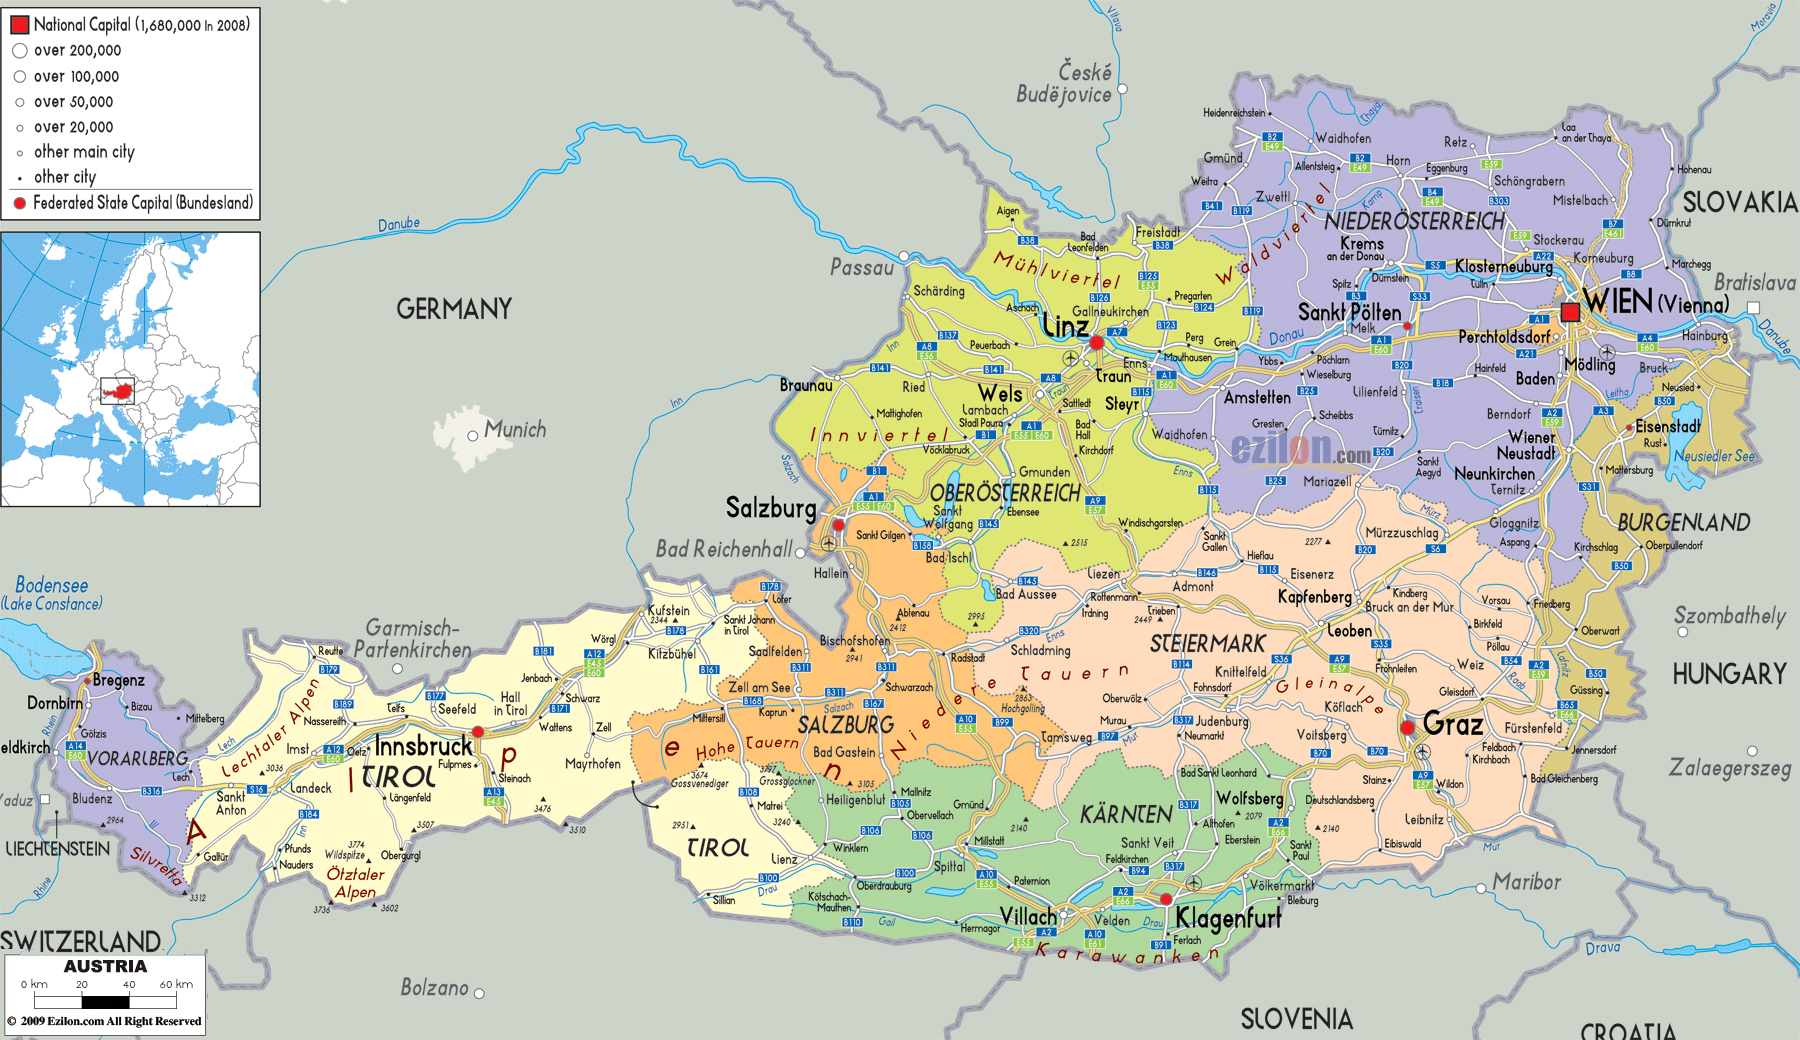 large_detailed_political_and_administrative_map_of_austria_with_all_cities_roads_and_airports_for_free